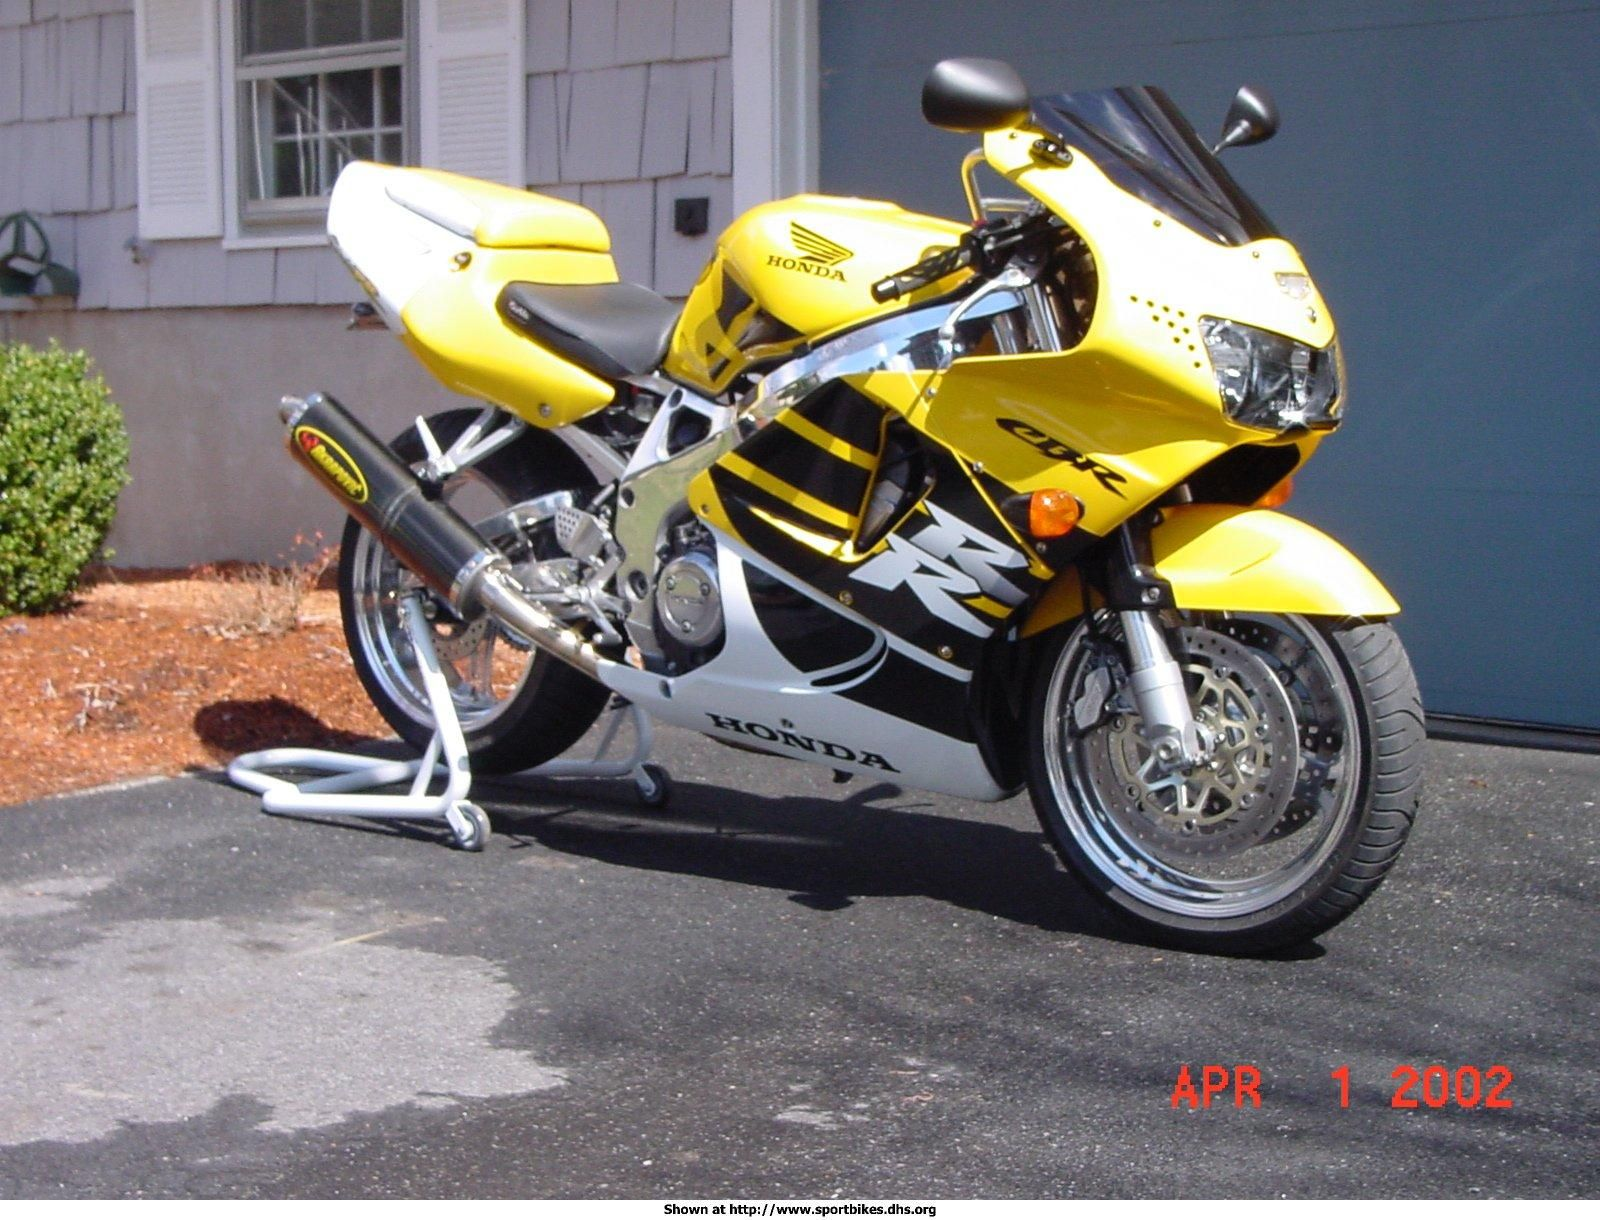 1999 Honda CBR 900 RR Fireblade. Love the chrome look on this Croch Rocket